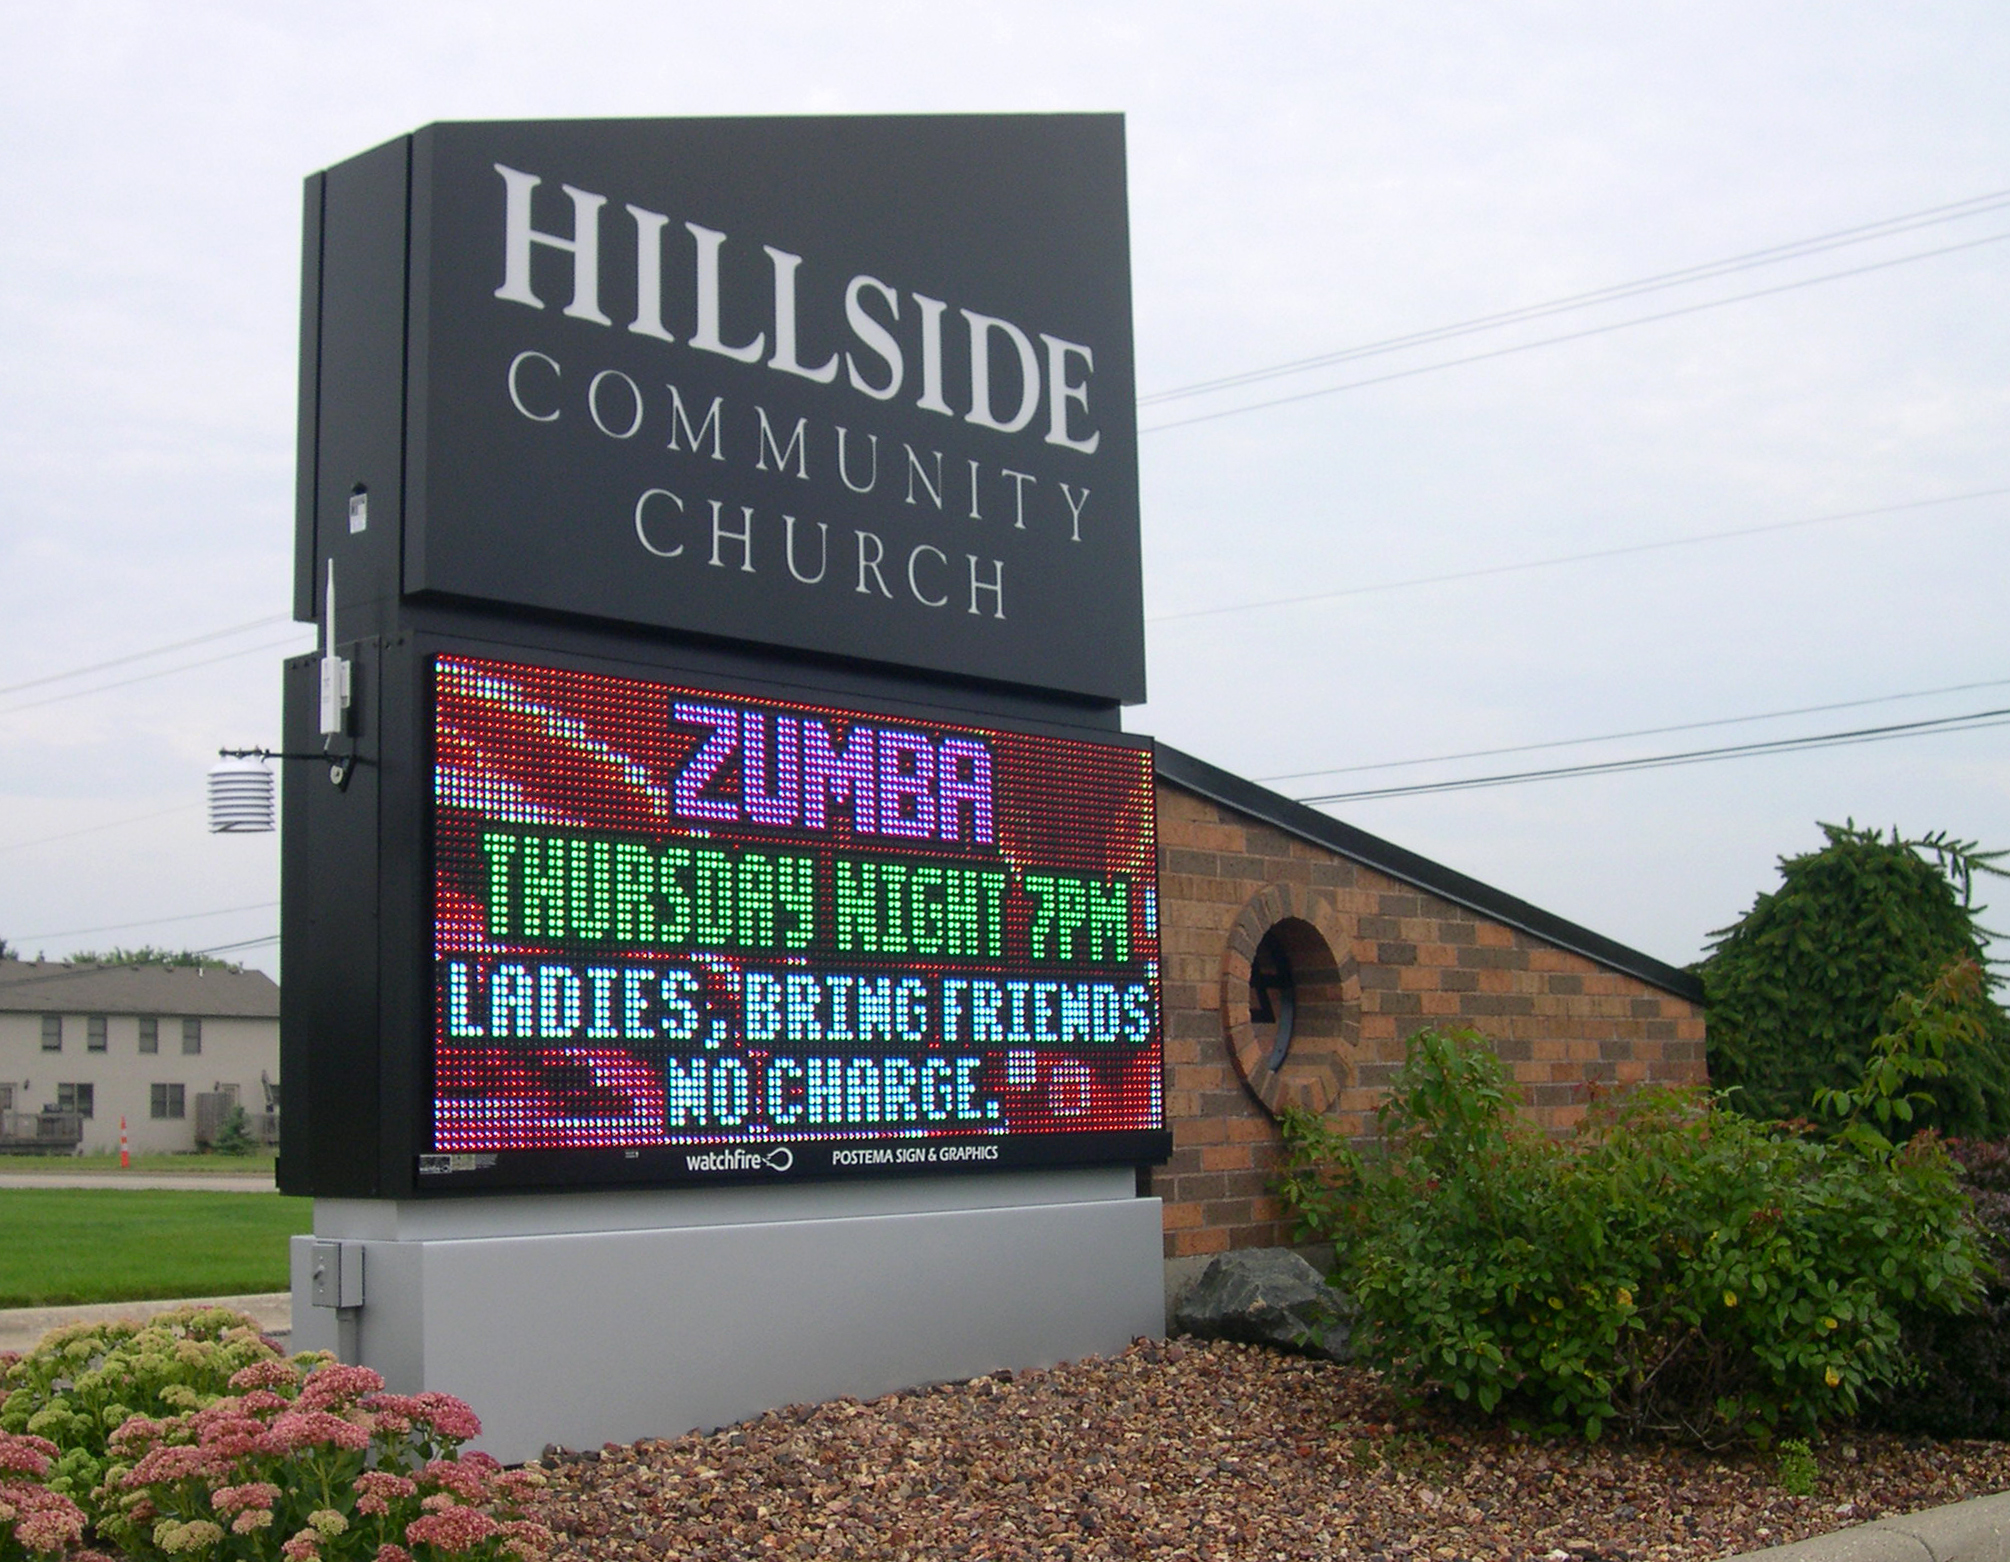 Hillside Community Church.jpeg